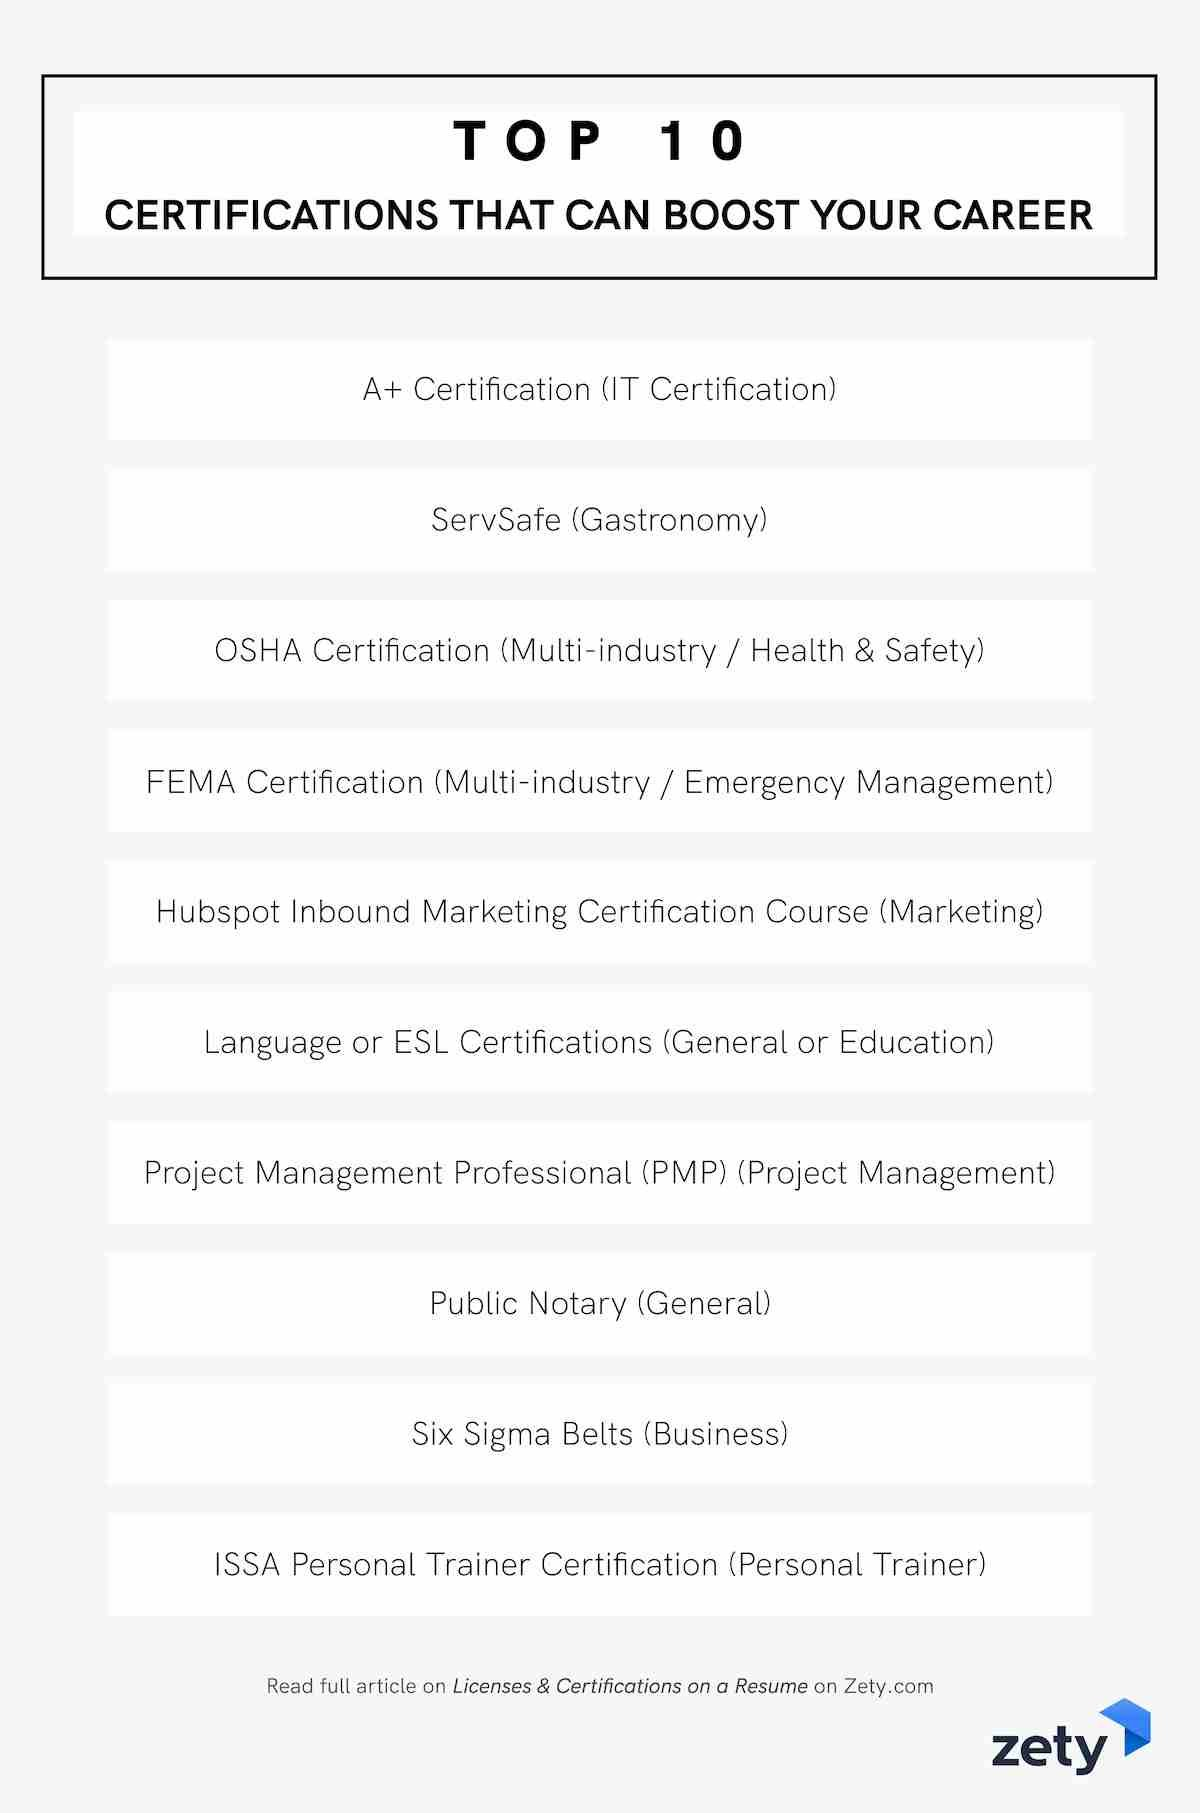 licenses certifications on resume sample easy tips boosting of useful for that can boost Resume Resume Boosting Certifications